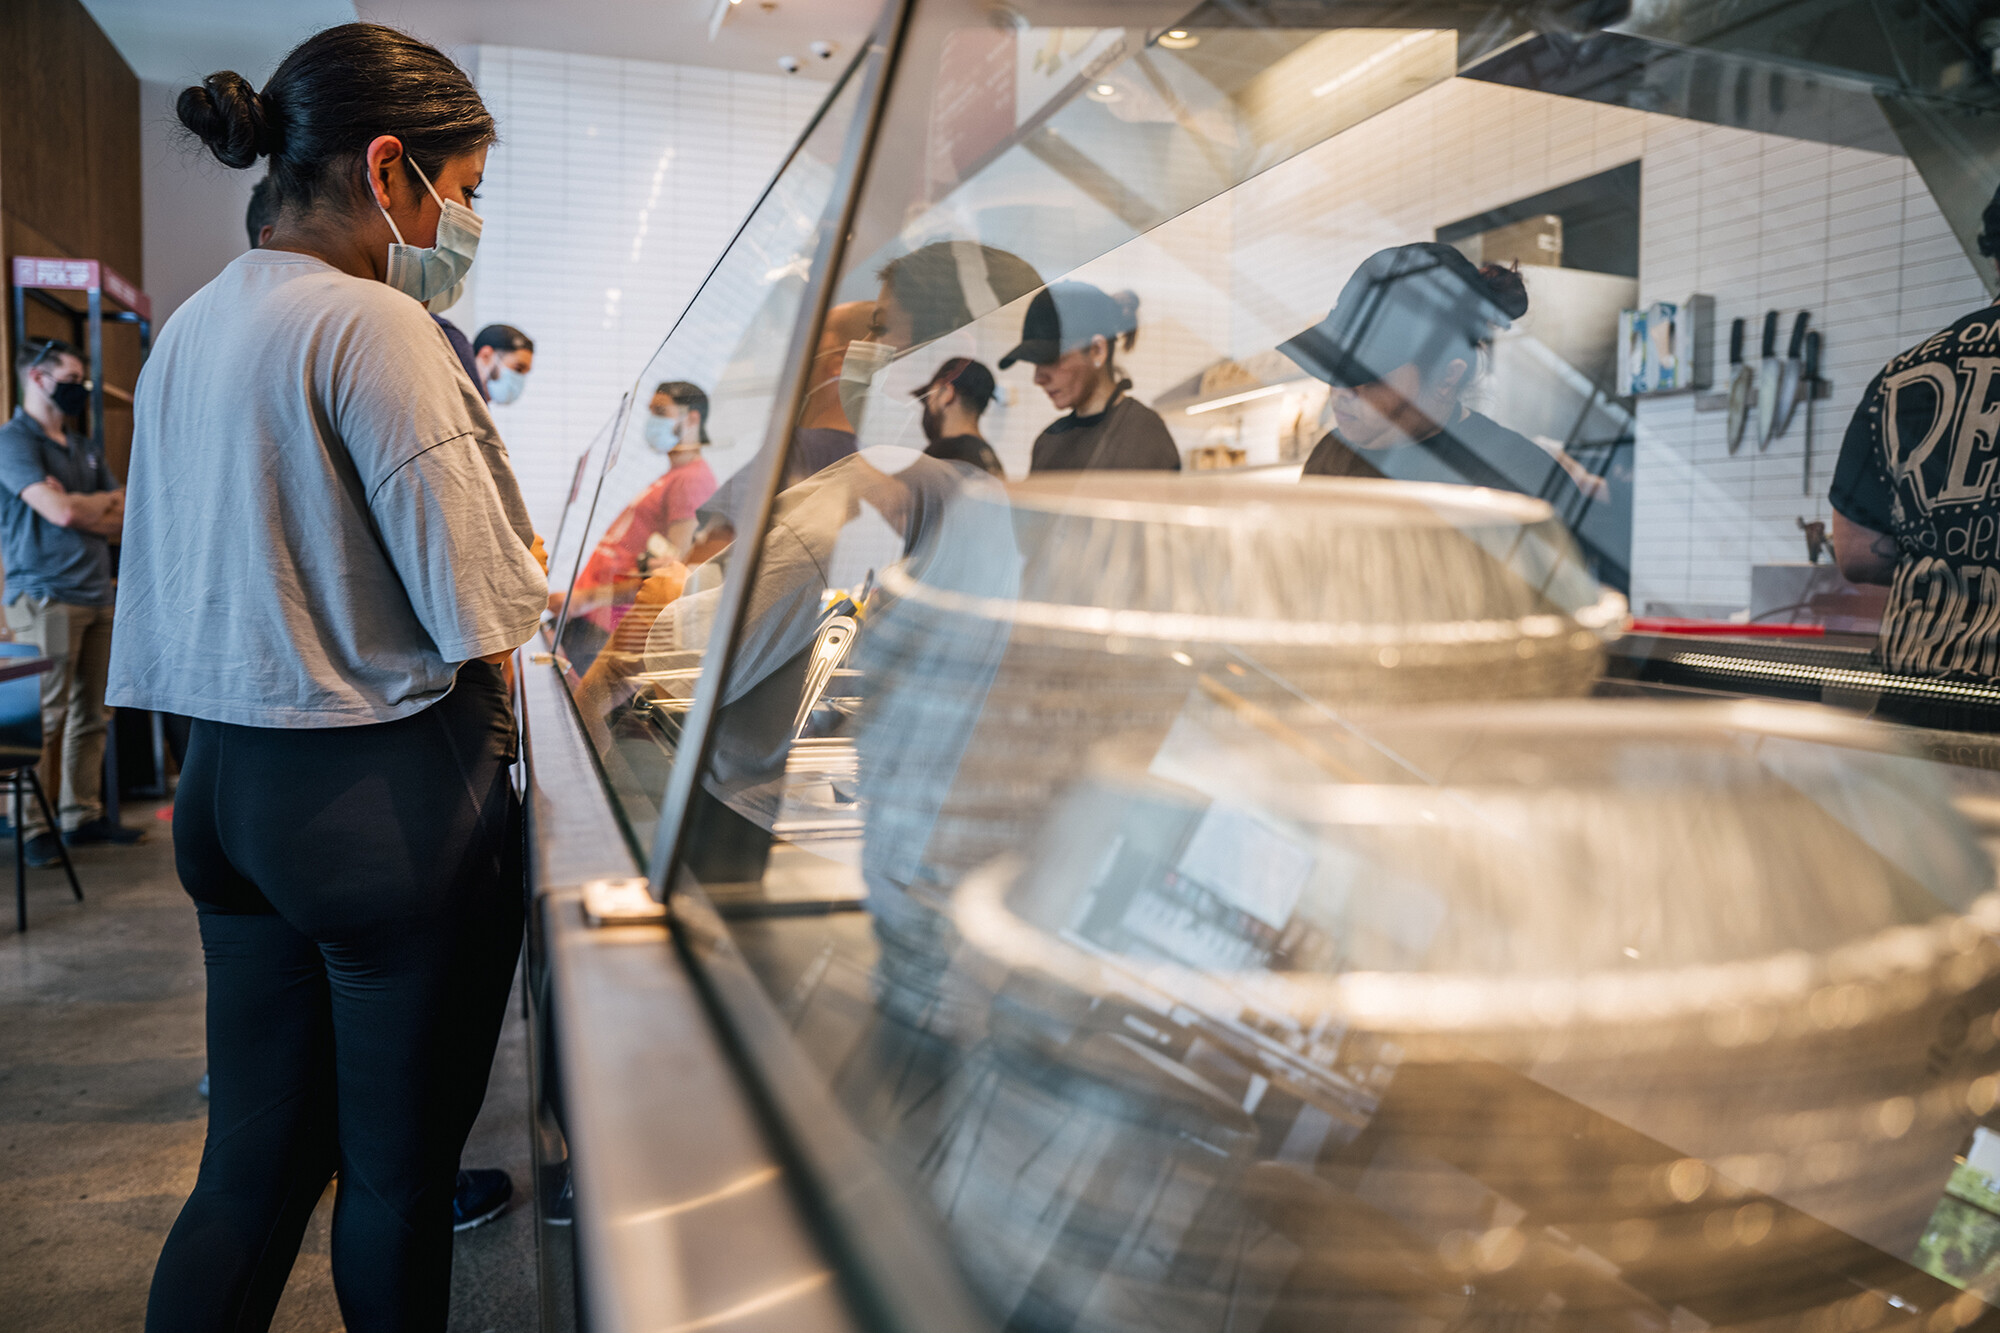 Restaurants are short on staff. Chipotle says raising wages helps